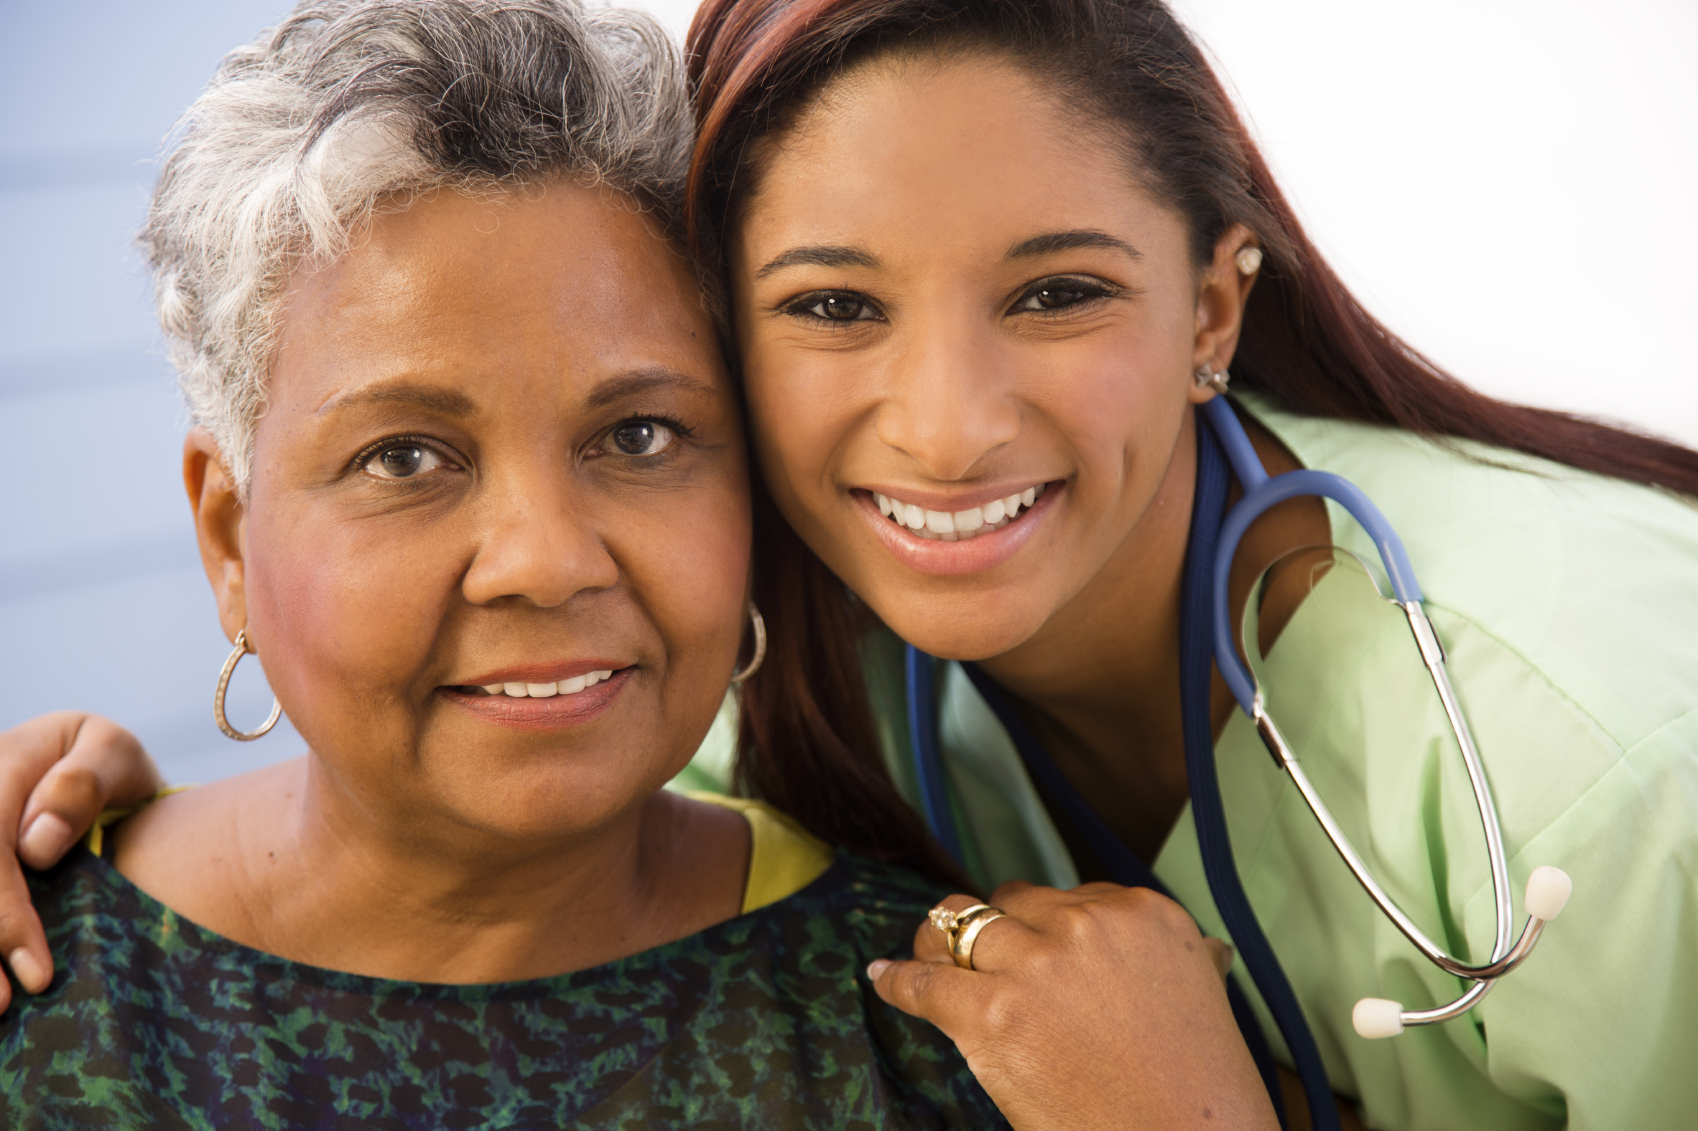 Tips from Hired Hands Homecare: Is Home Care the Best Option for Your Loved One?